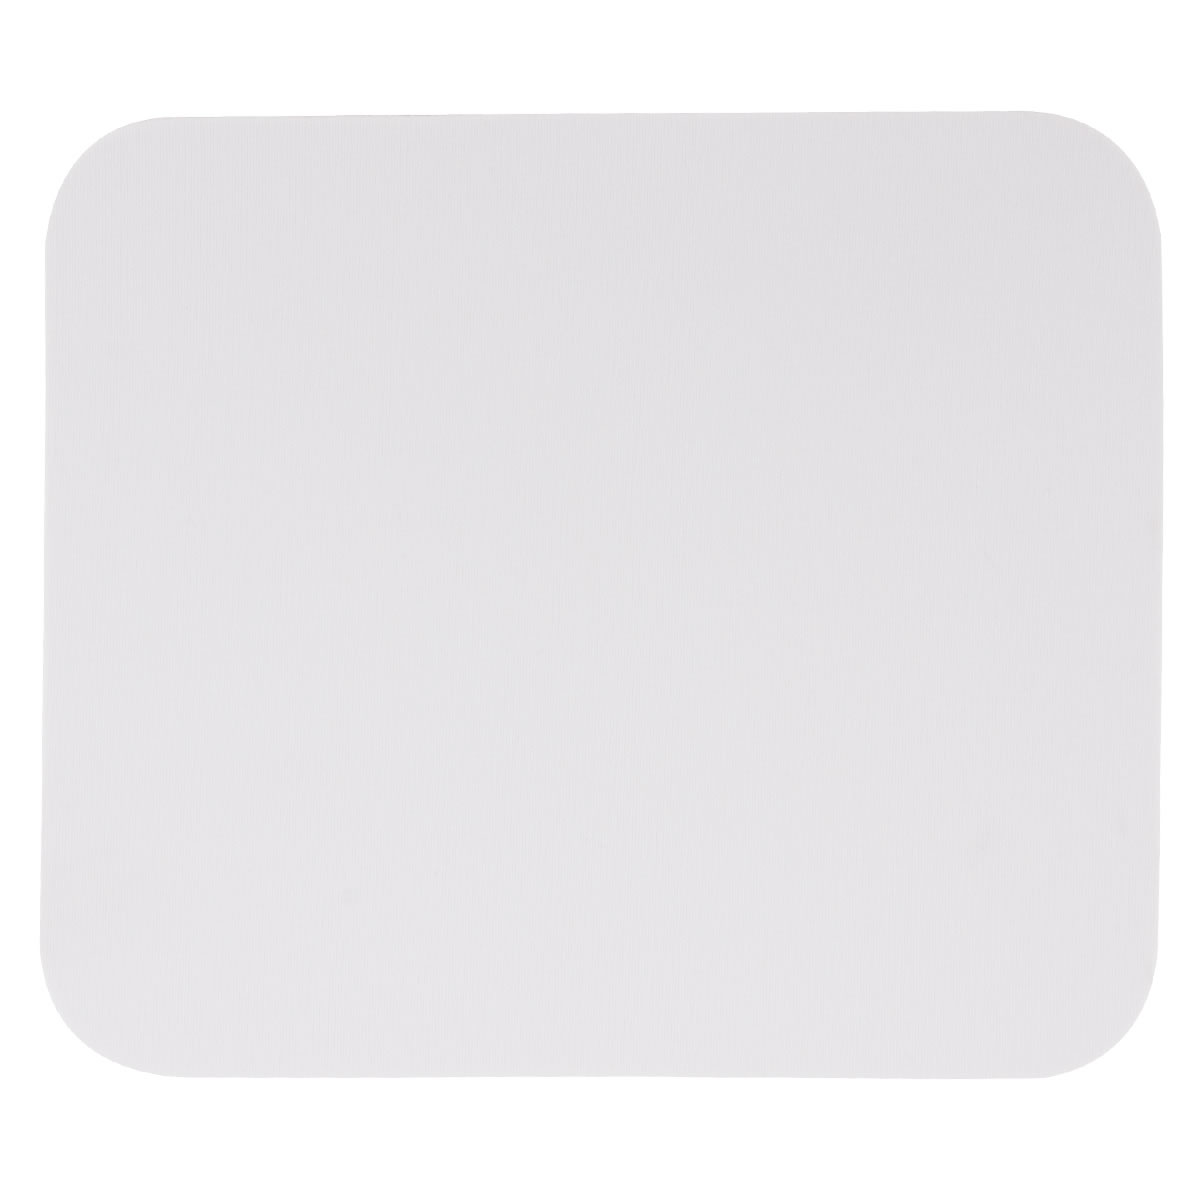 MOUSE PAD RECTANGULAR COLOR BLANCO